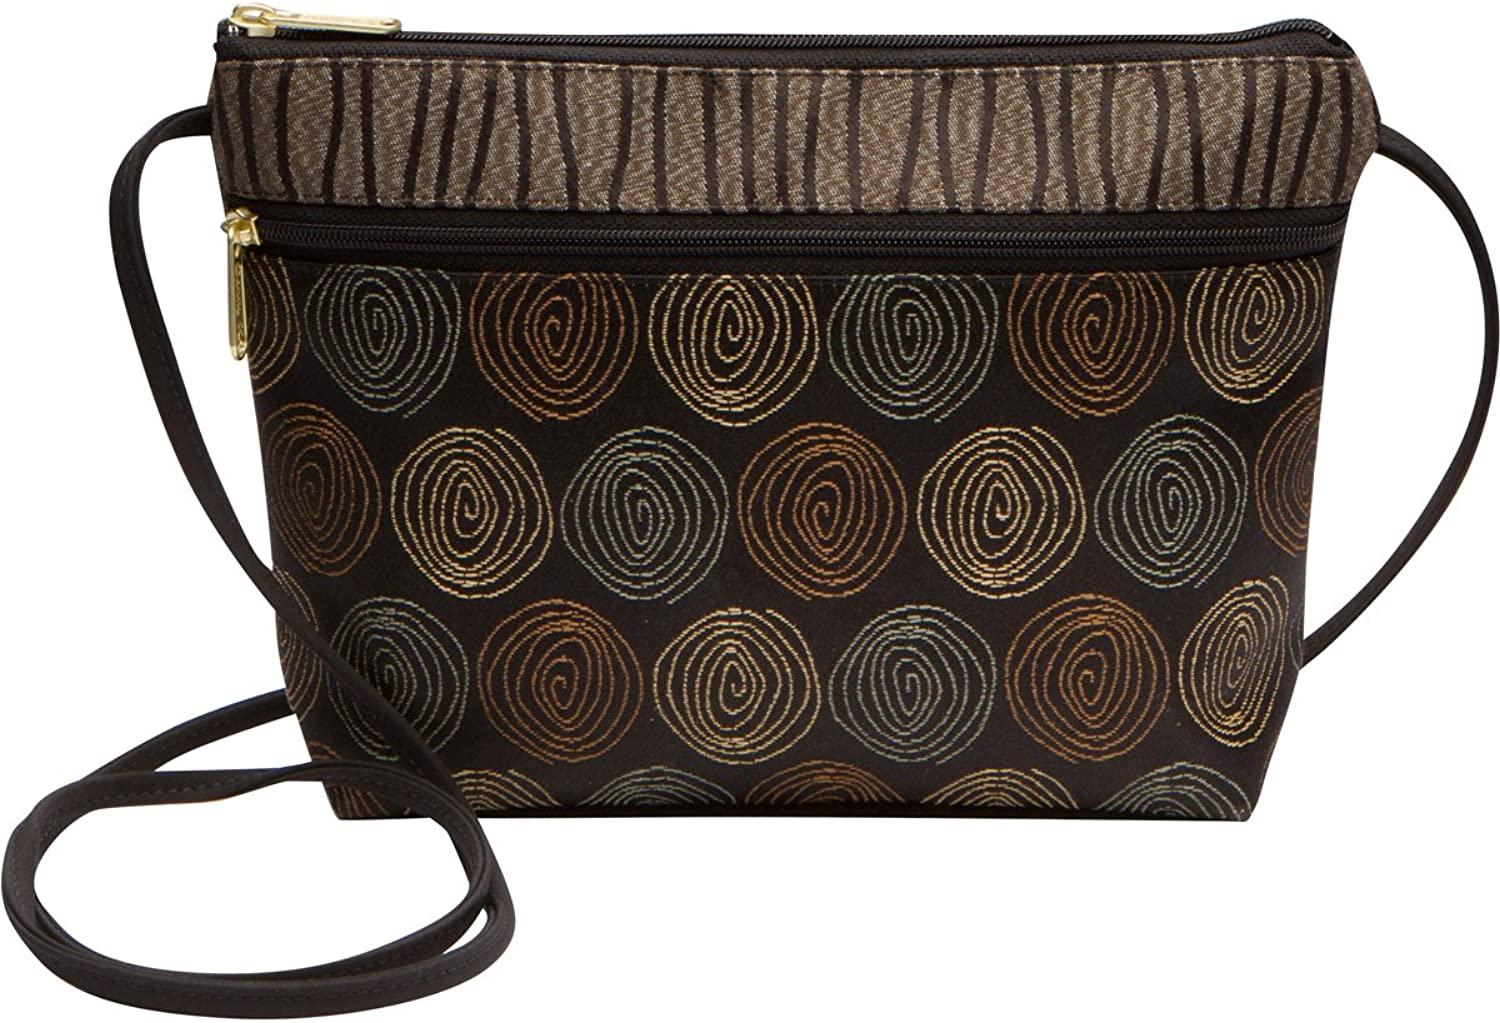 Danny K Women's Tapestry Zipper Purse Crossbody Handbag, Adjustable Cord, Handmade in USA